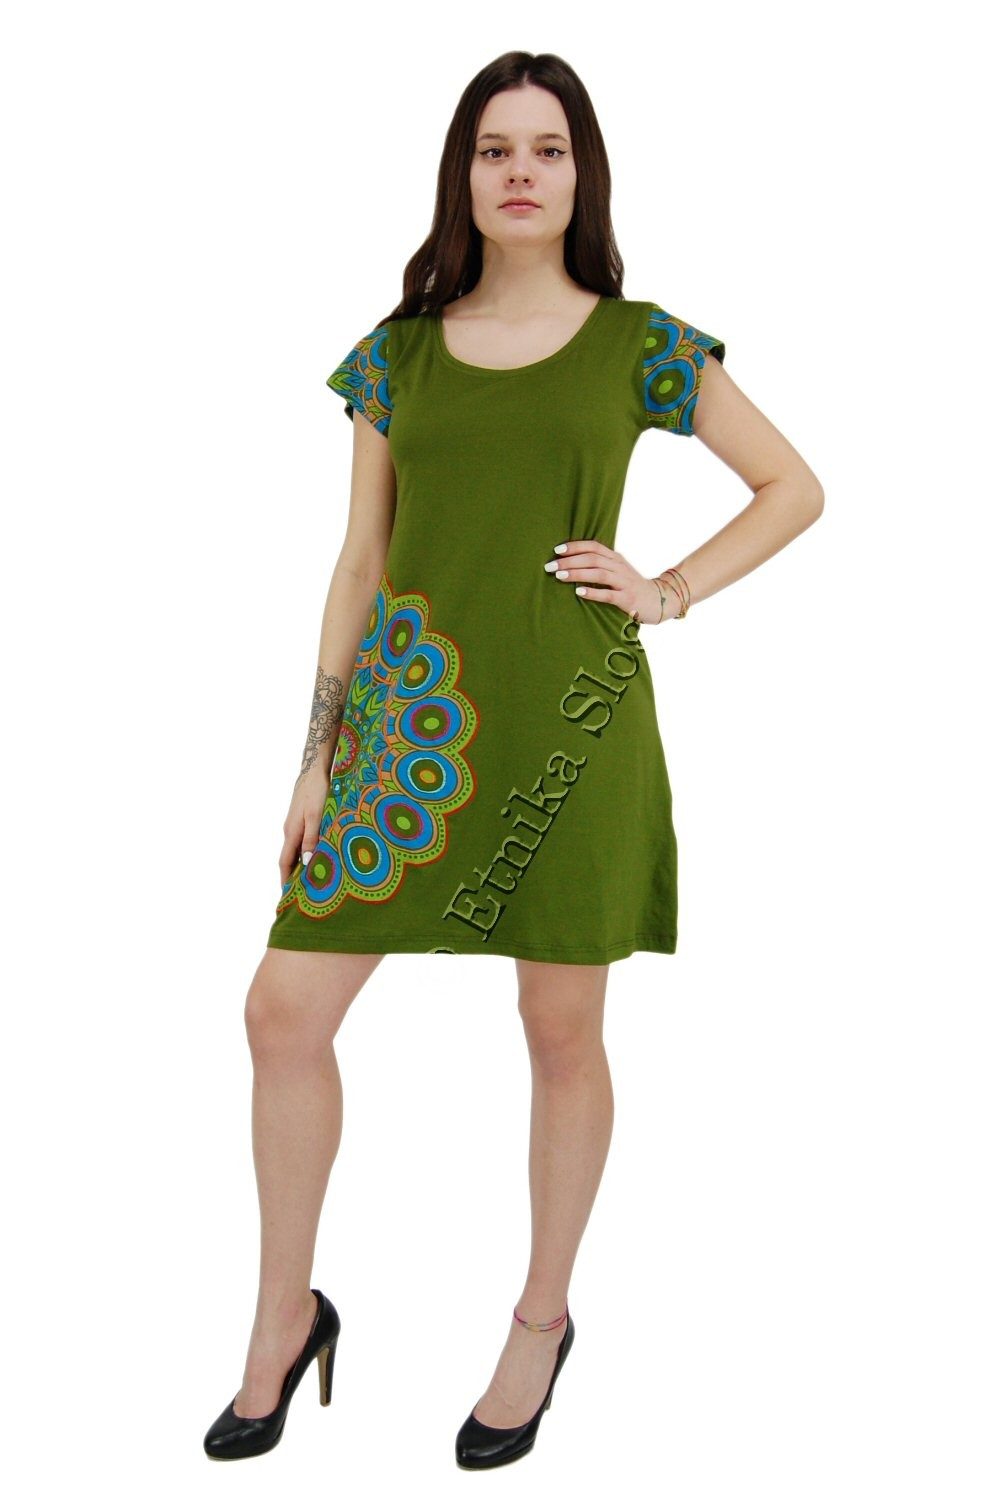 SHORT SLEEVE AND SLEEVELESS COTTON DRESSES AB-BSV45 - Oriente Import S.r.l.